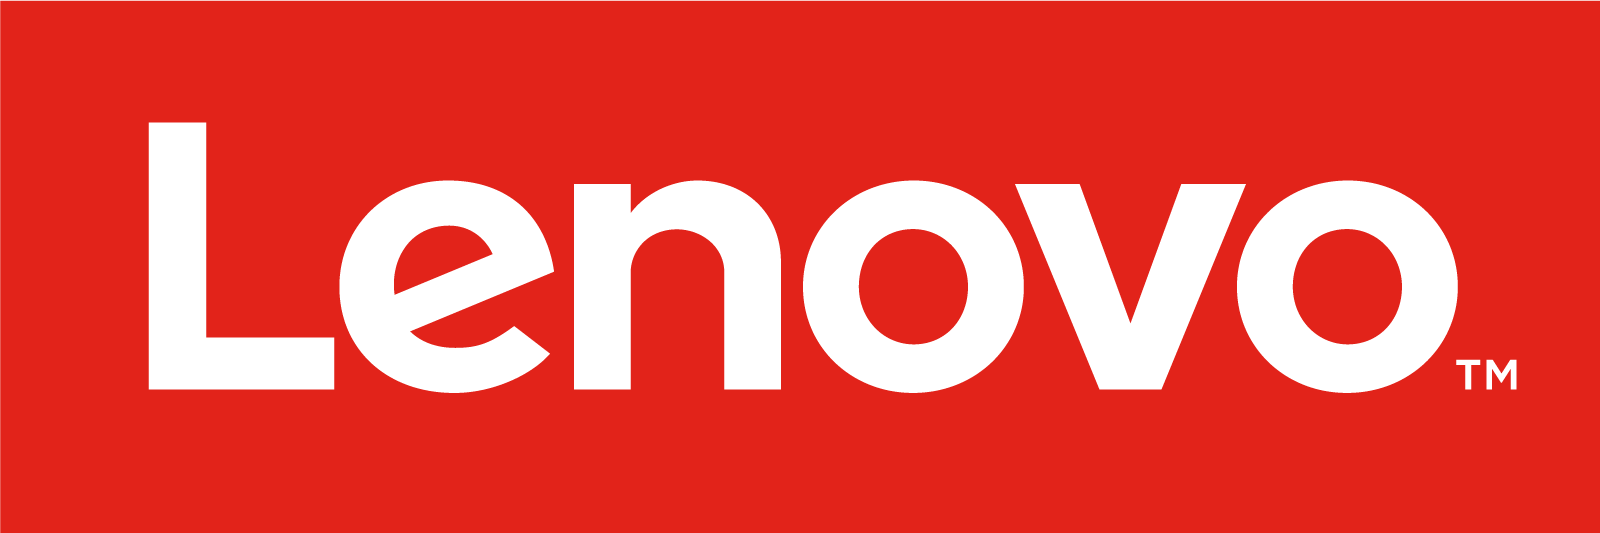 LenovoLogoPOS_Red.png